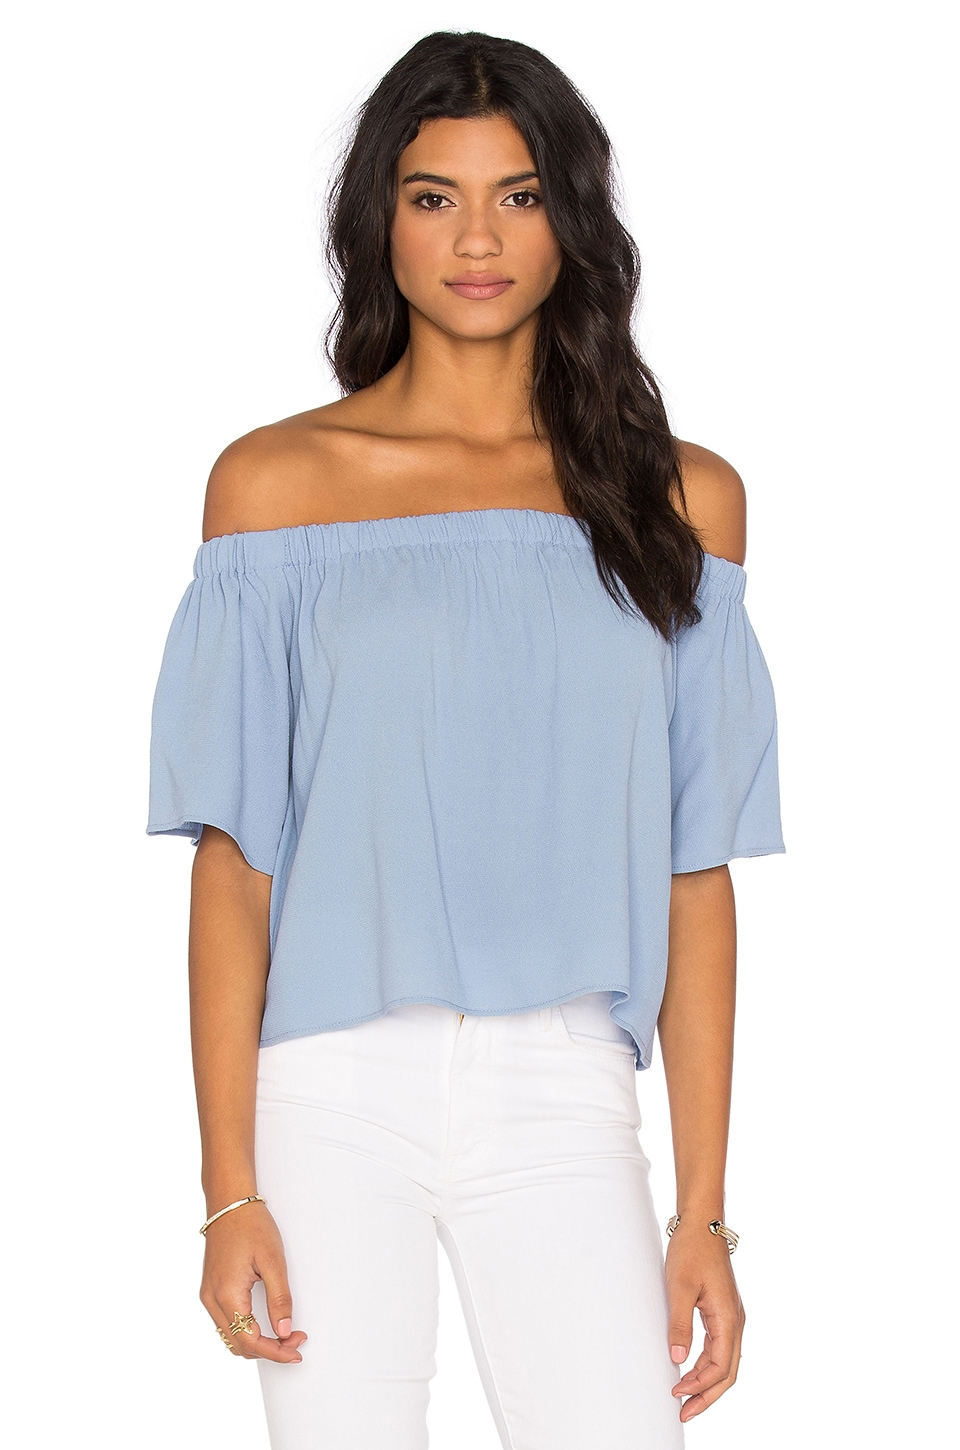 Otis & Maclain Laura Off Shoulder Top in Eastwood Blue